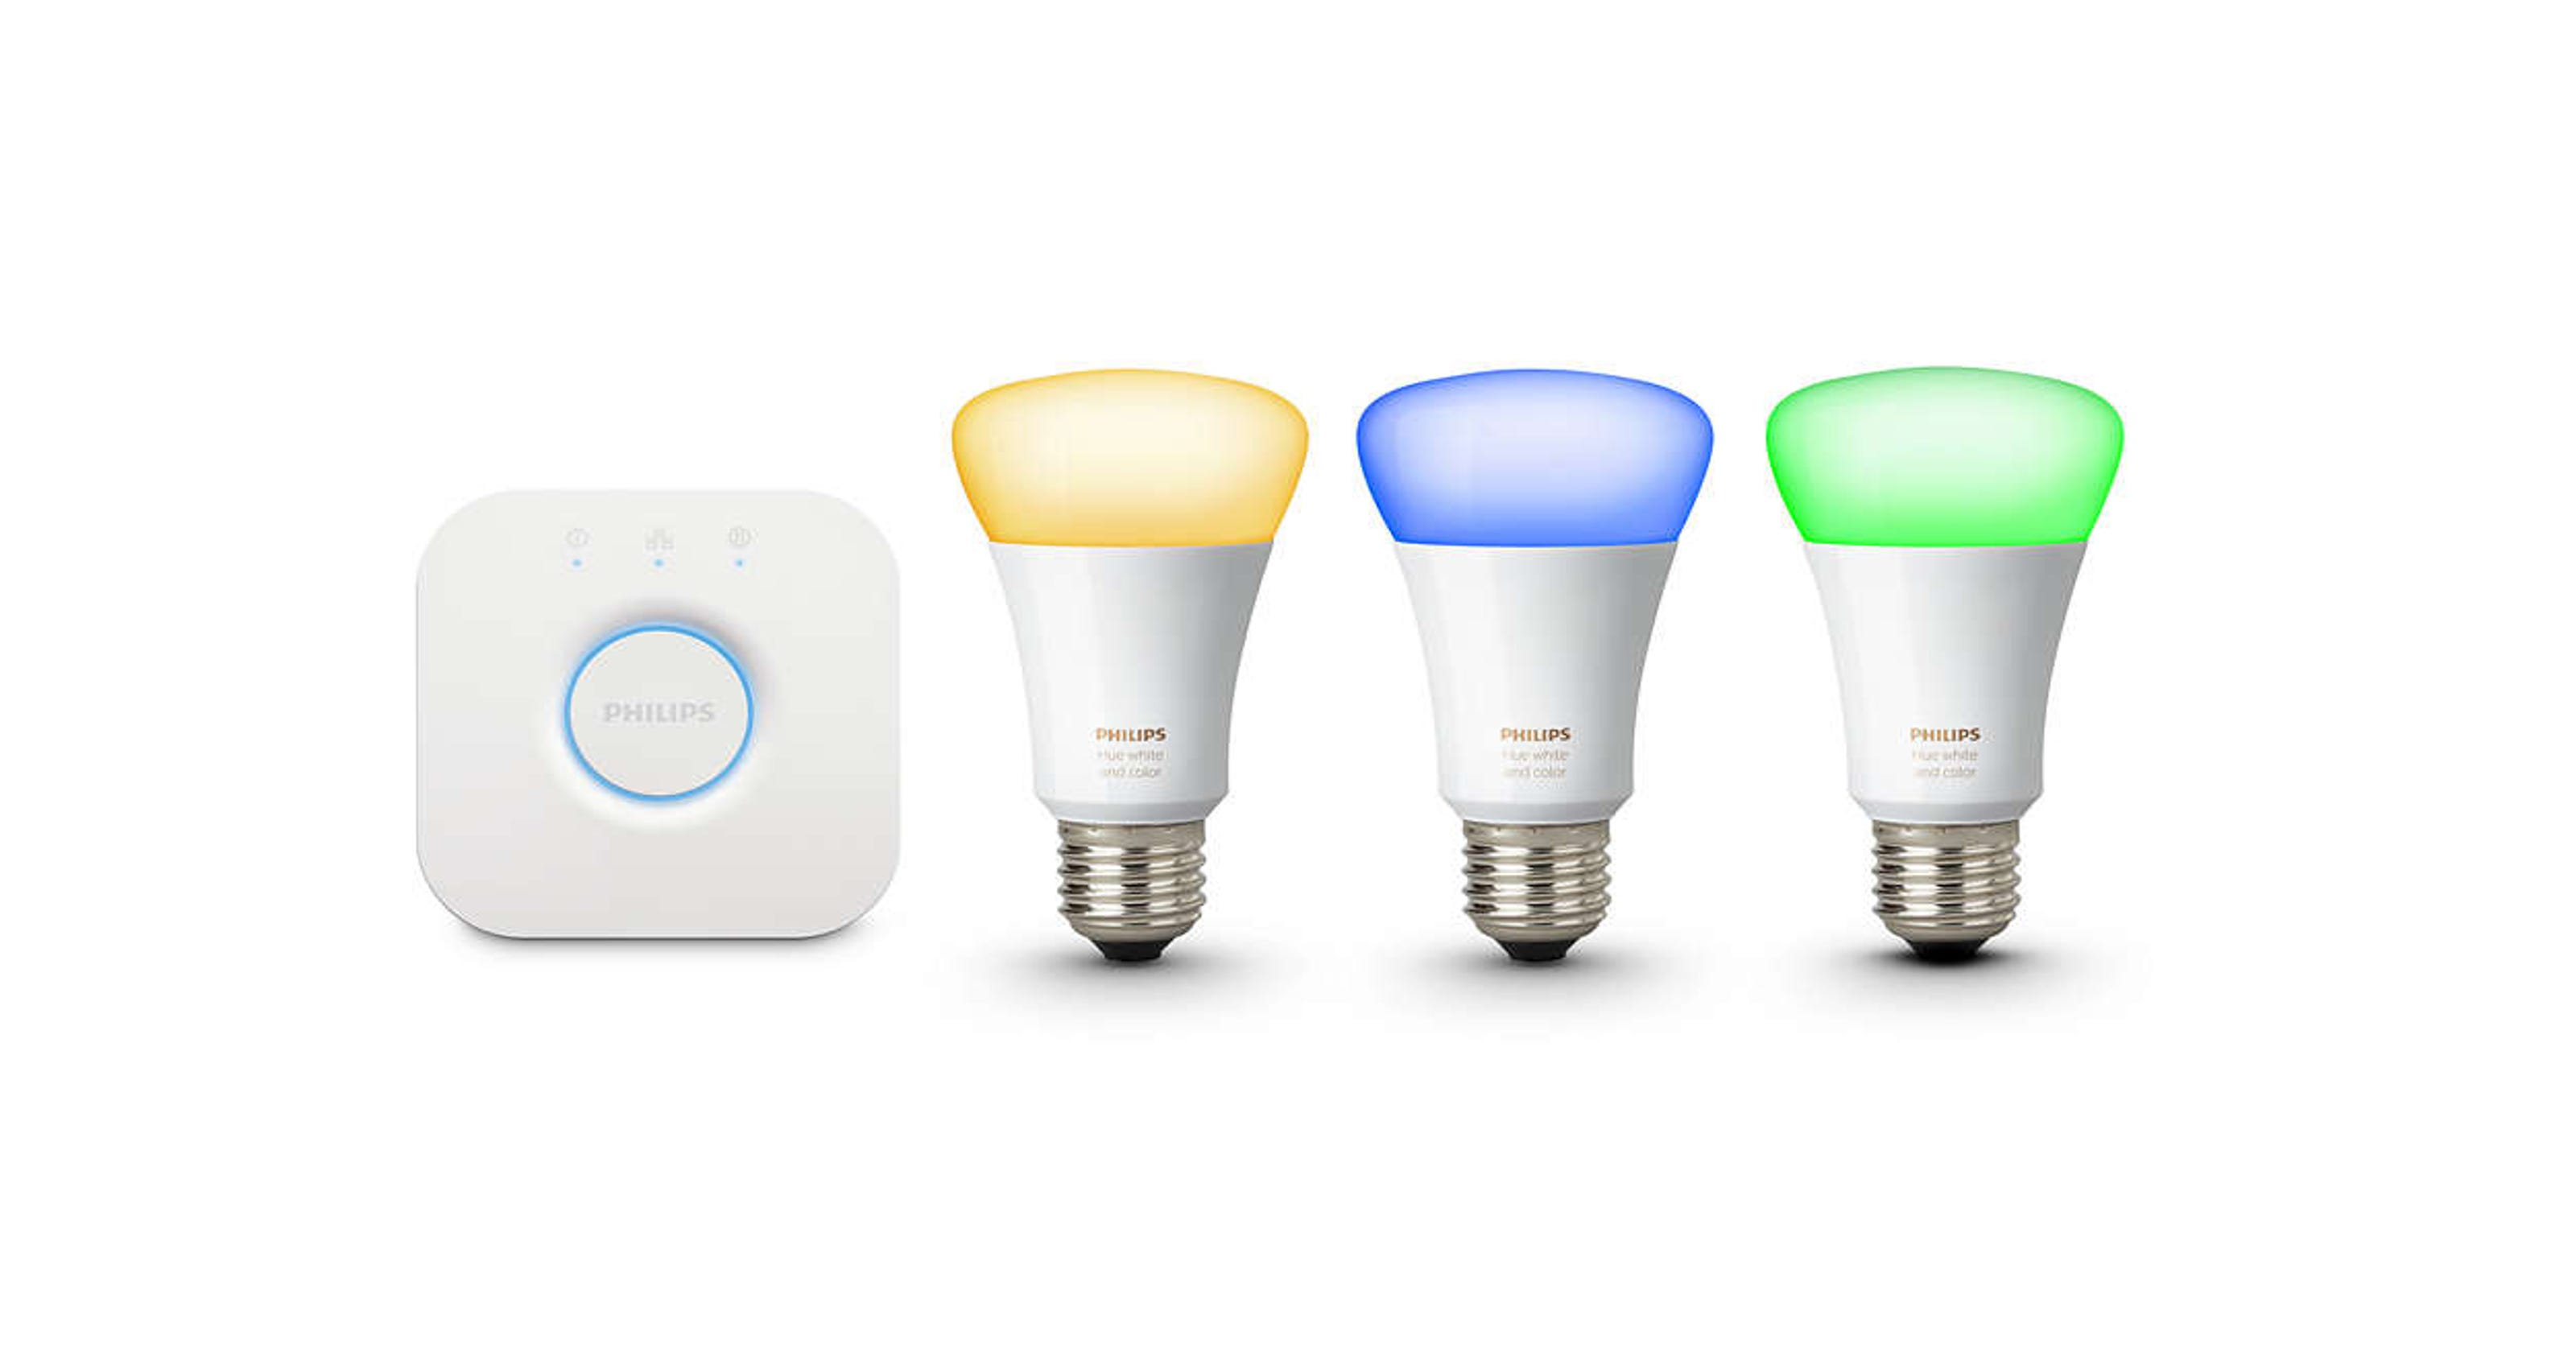 Led Lighting And Smart Bulbs How To Save Energy Cut Costs Voice Activated Light Photo Control Switch 12v On Off Ebay